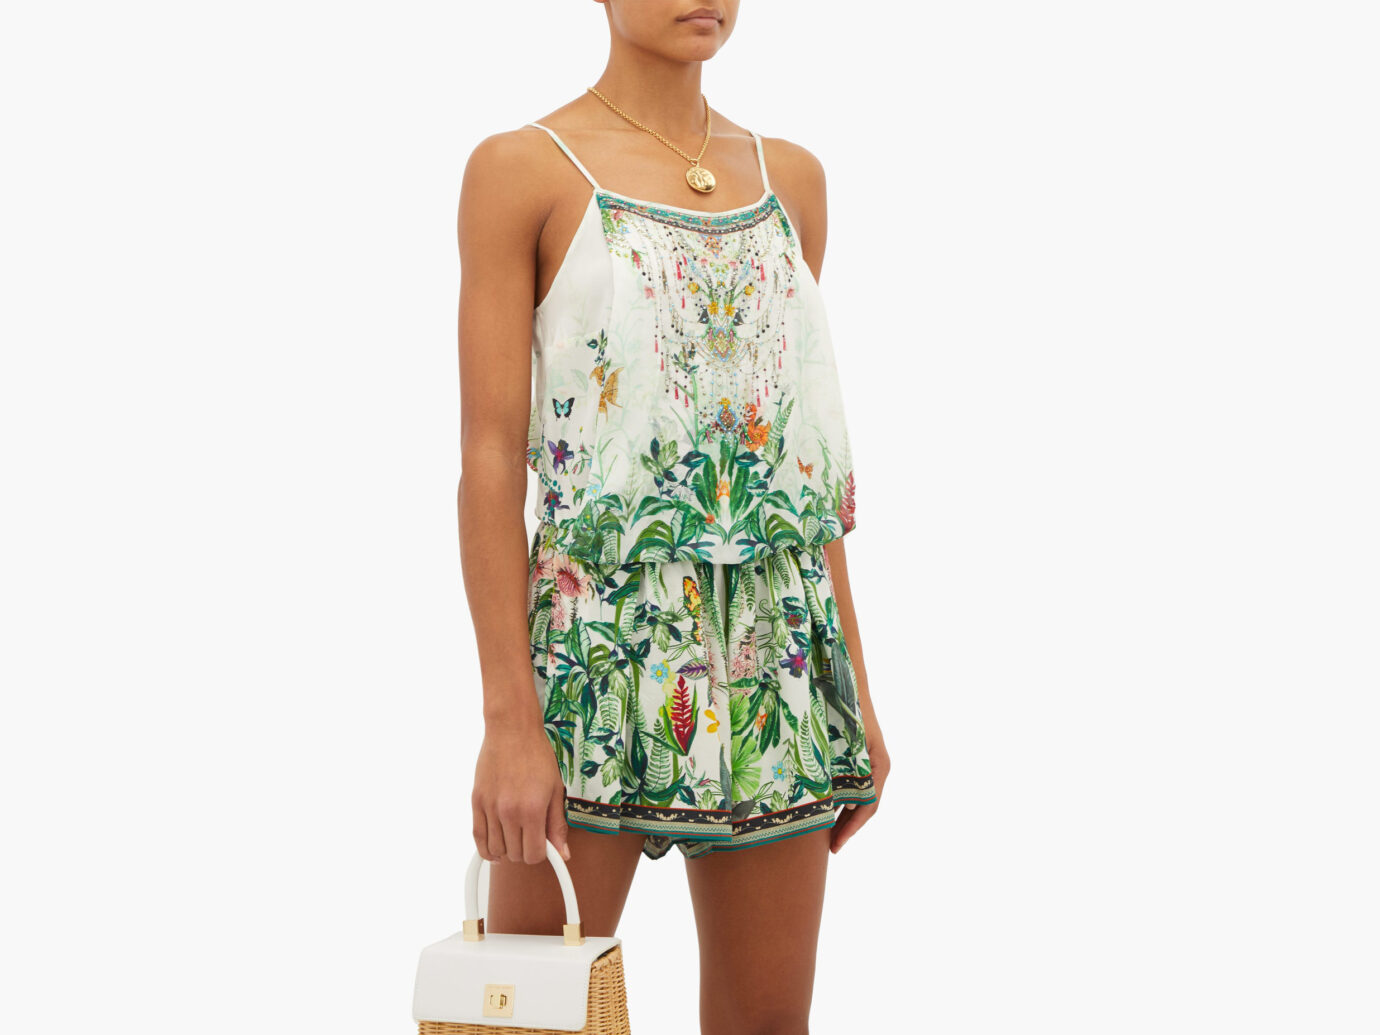 Camilla Daintree Darling Rainforest-Print Playsuit